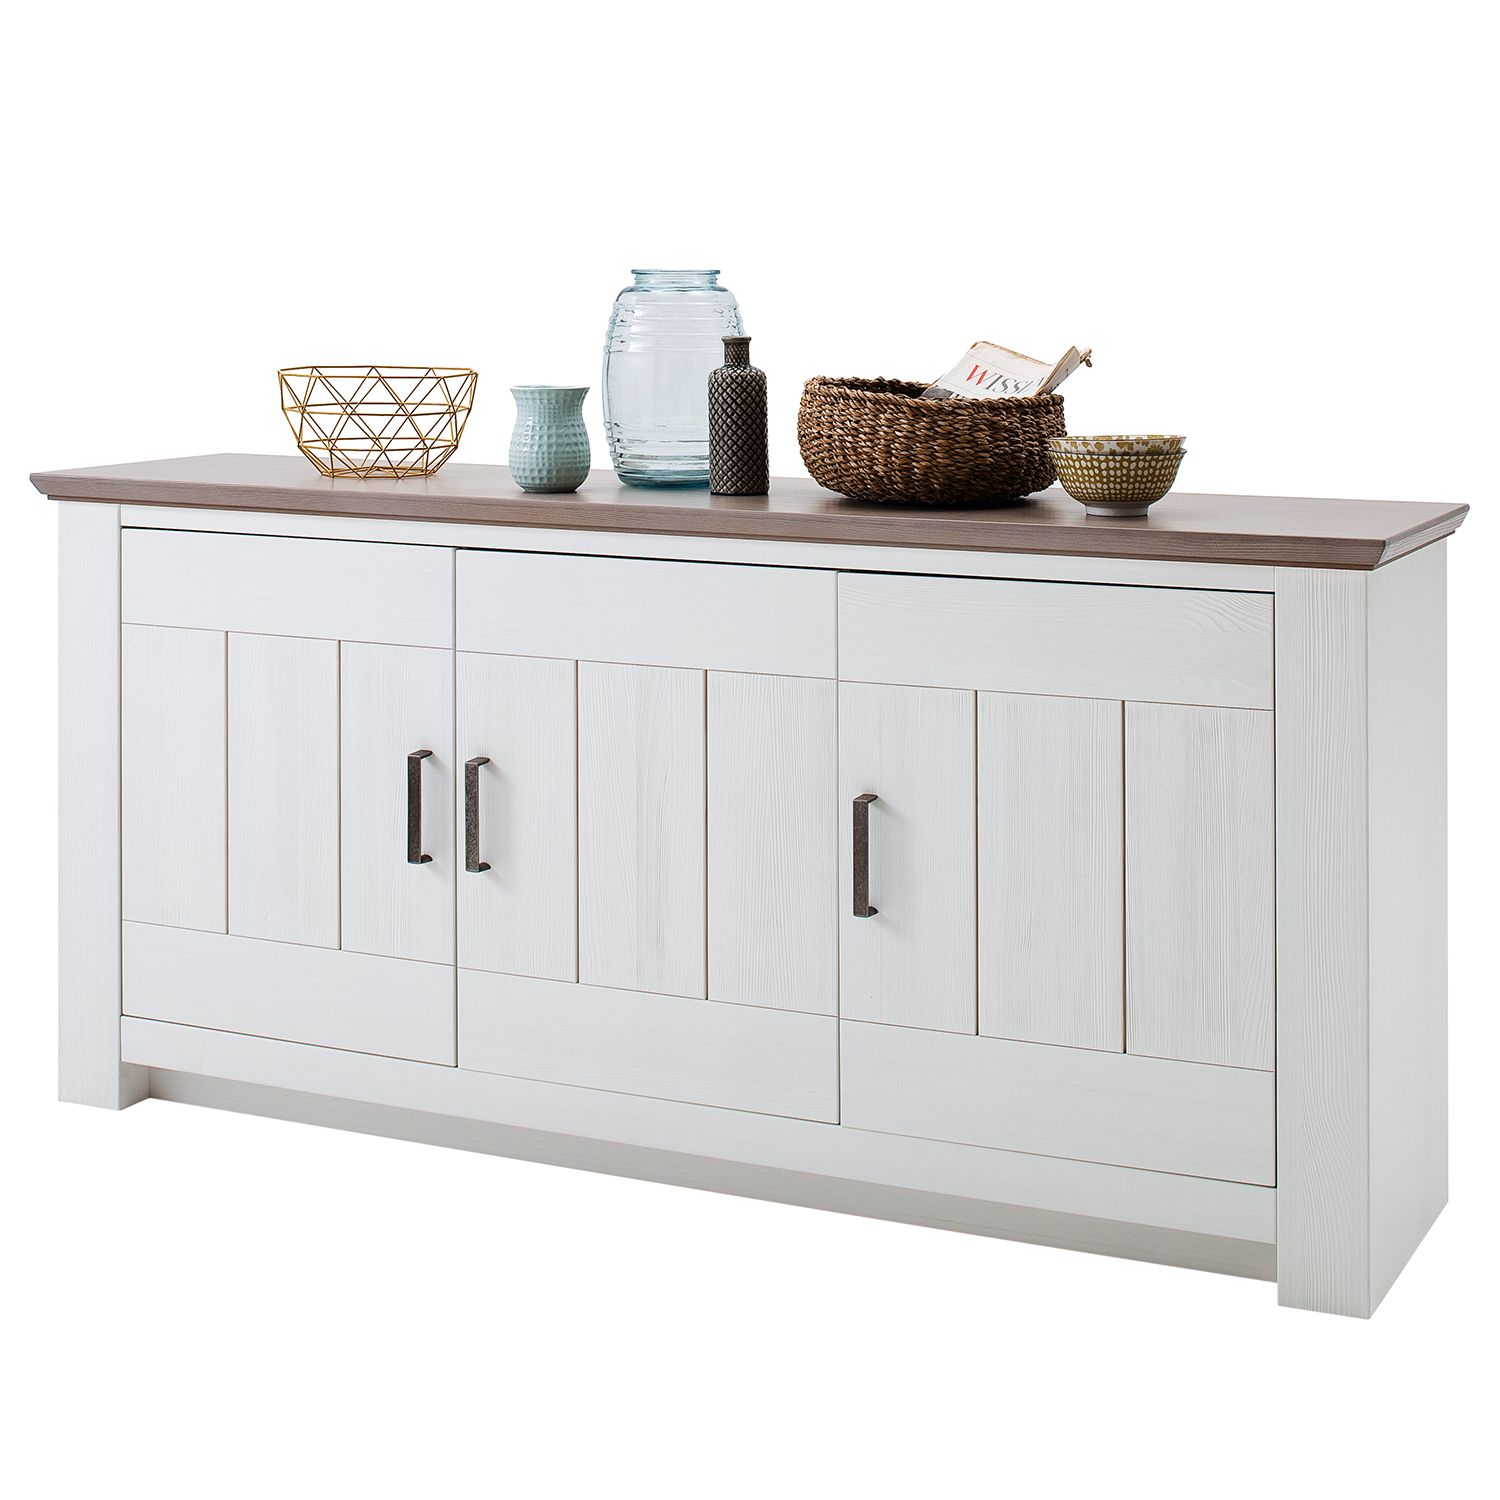 home24 Sideboard Maquili